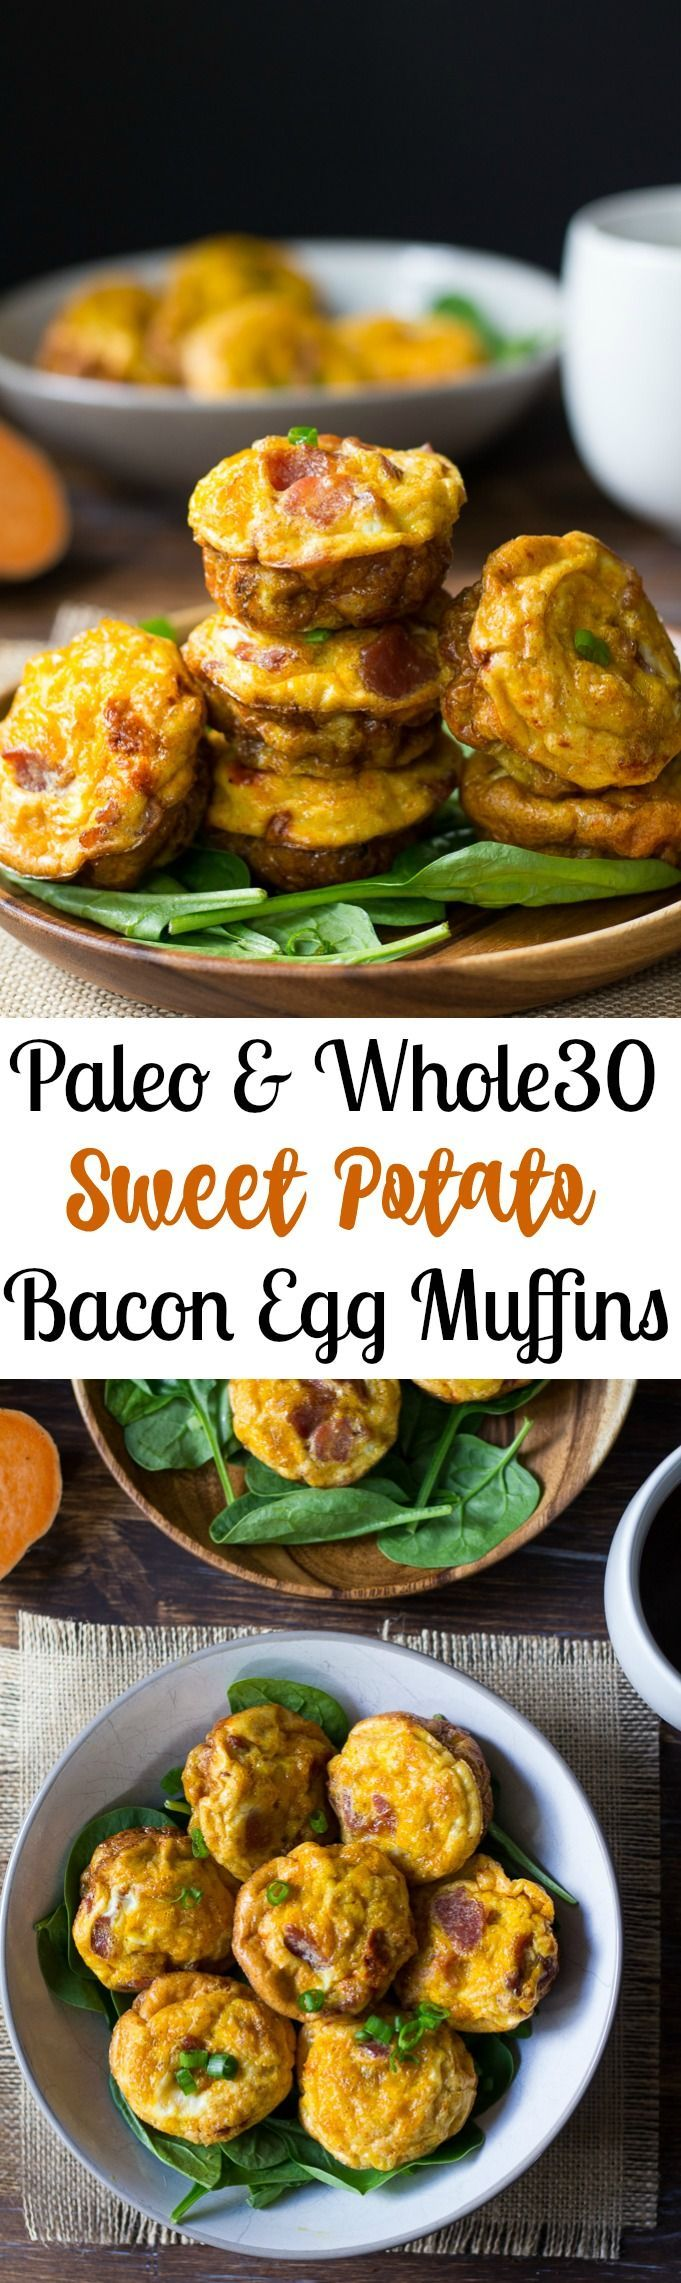 Paleo Sweet Potato Bacon Egg Muffins Recipe                                                                                                                                                                                 Mais